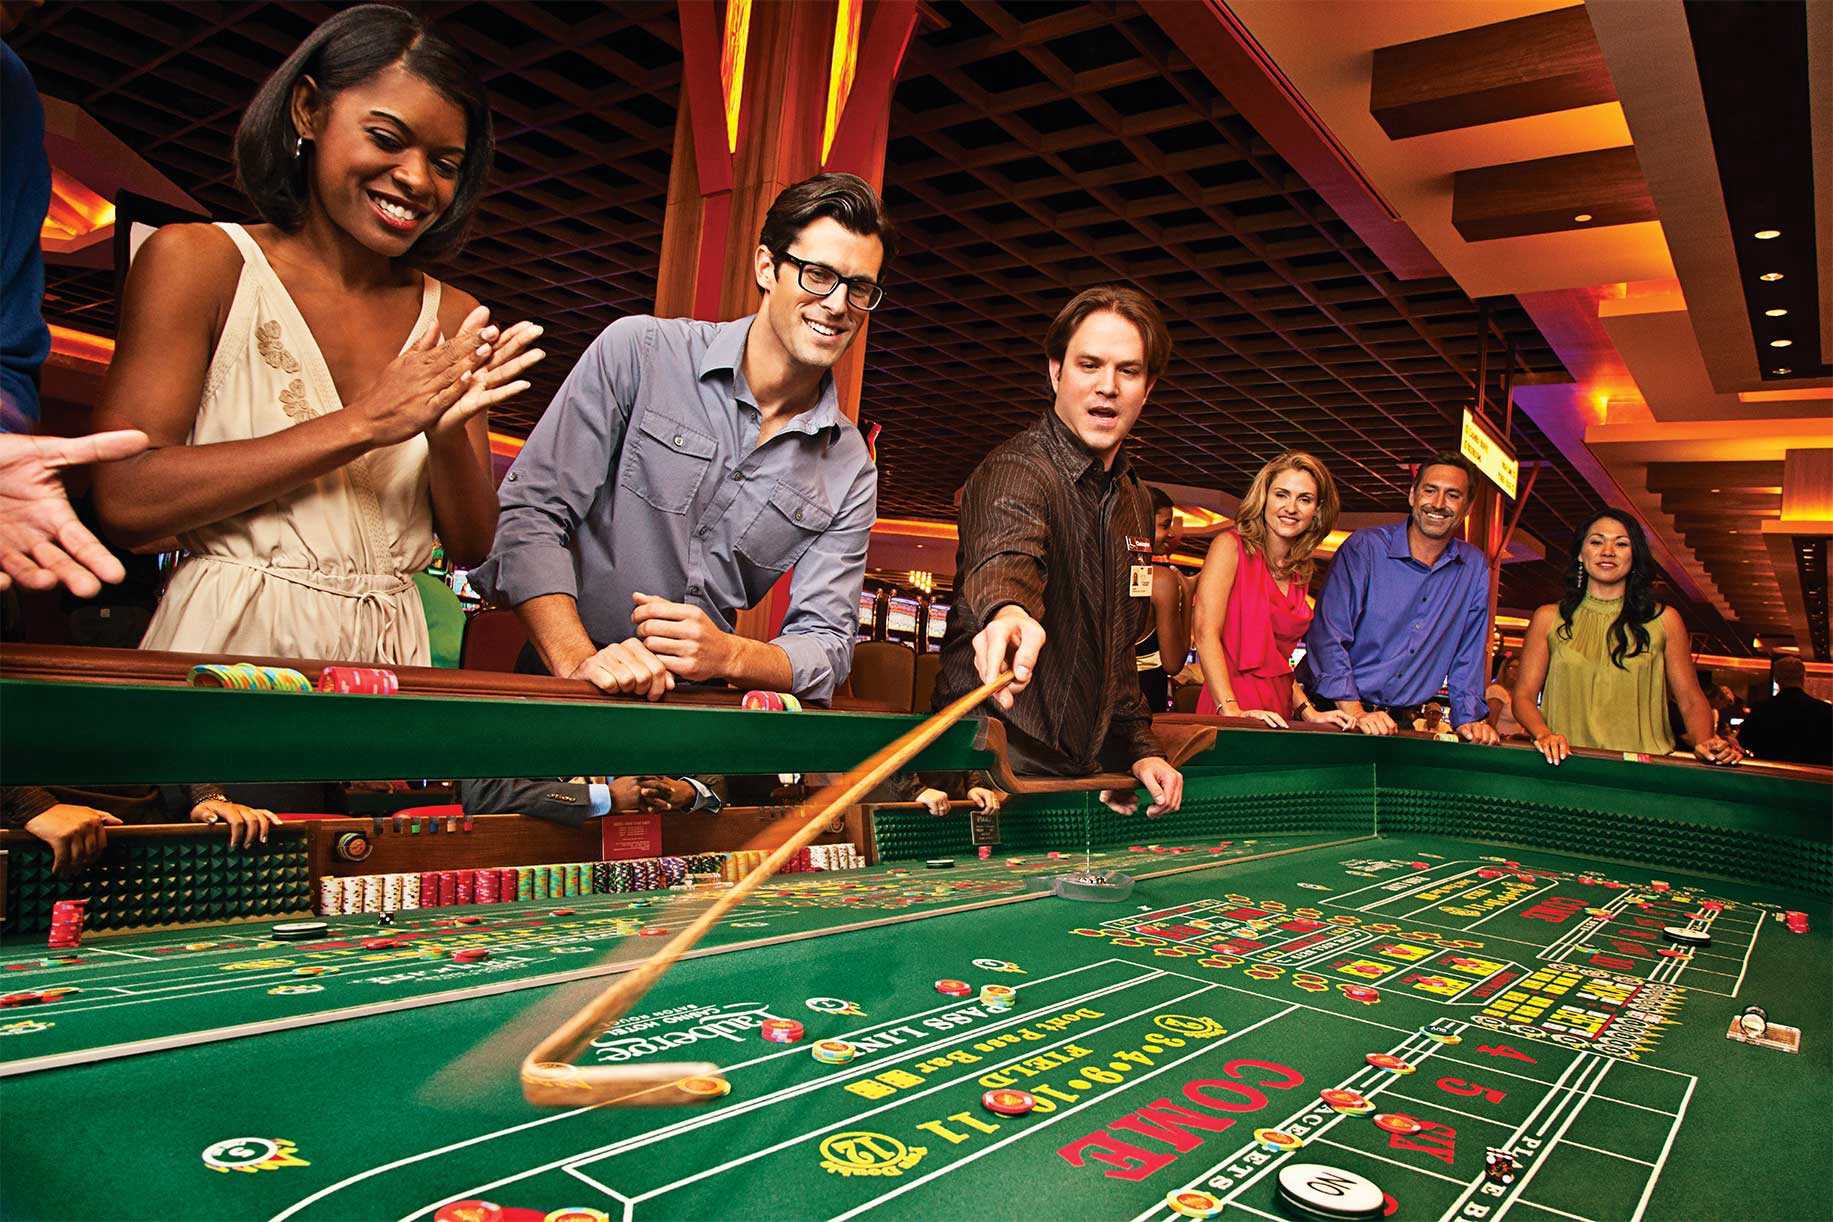 Why gambling club spaces are so mainstream these days - poke